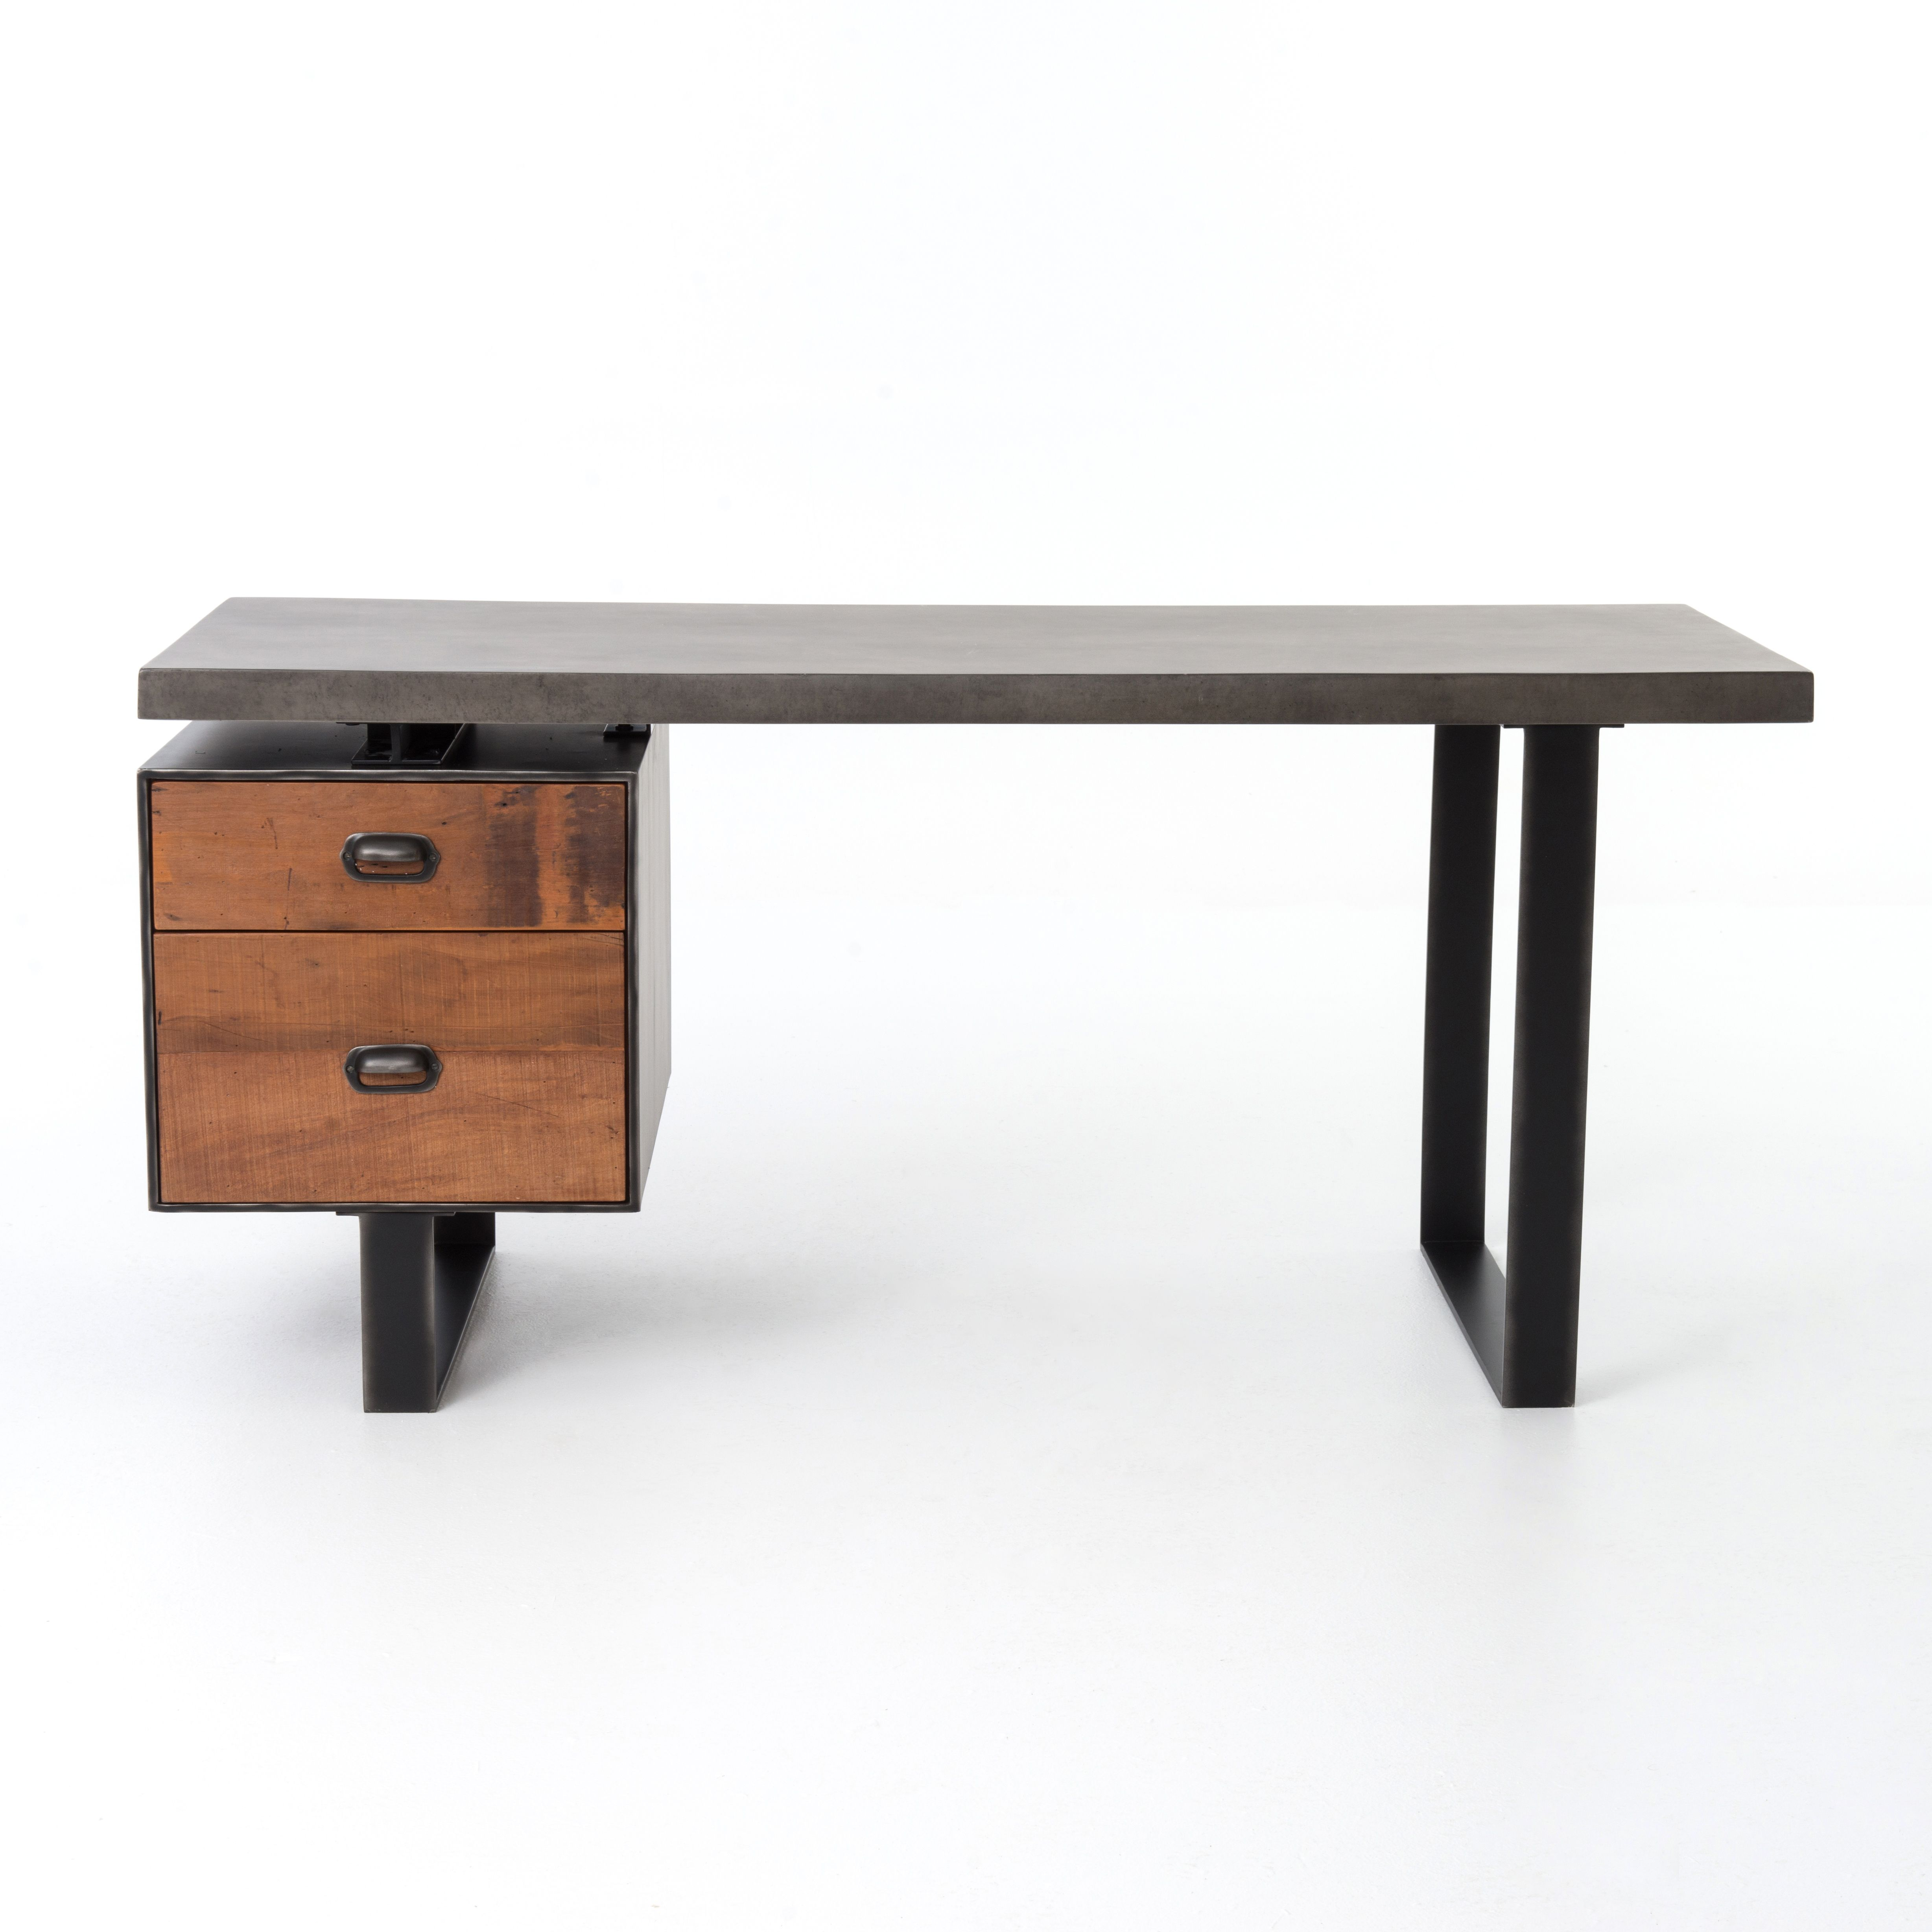 Four Hands Vbna Dk276 Home Office Clapton Desk With Images Desk With File Drawer Wood Desk Goods Home Furnishings